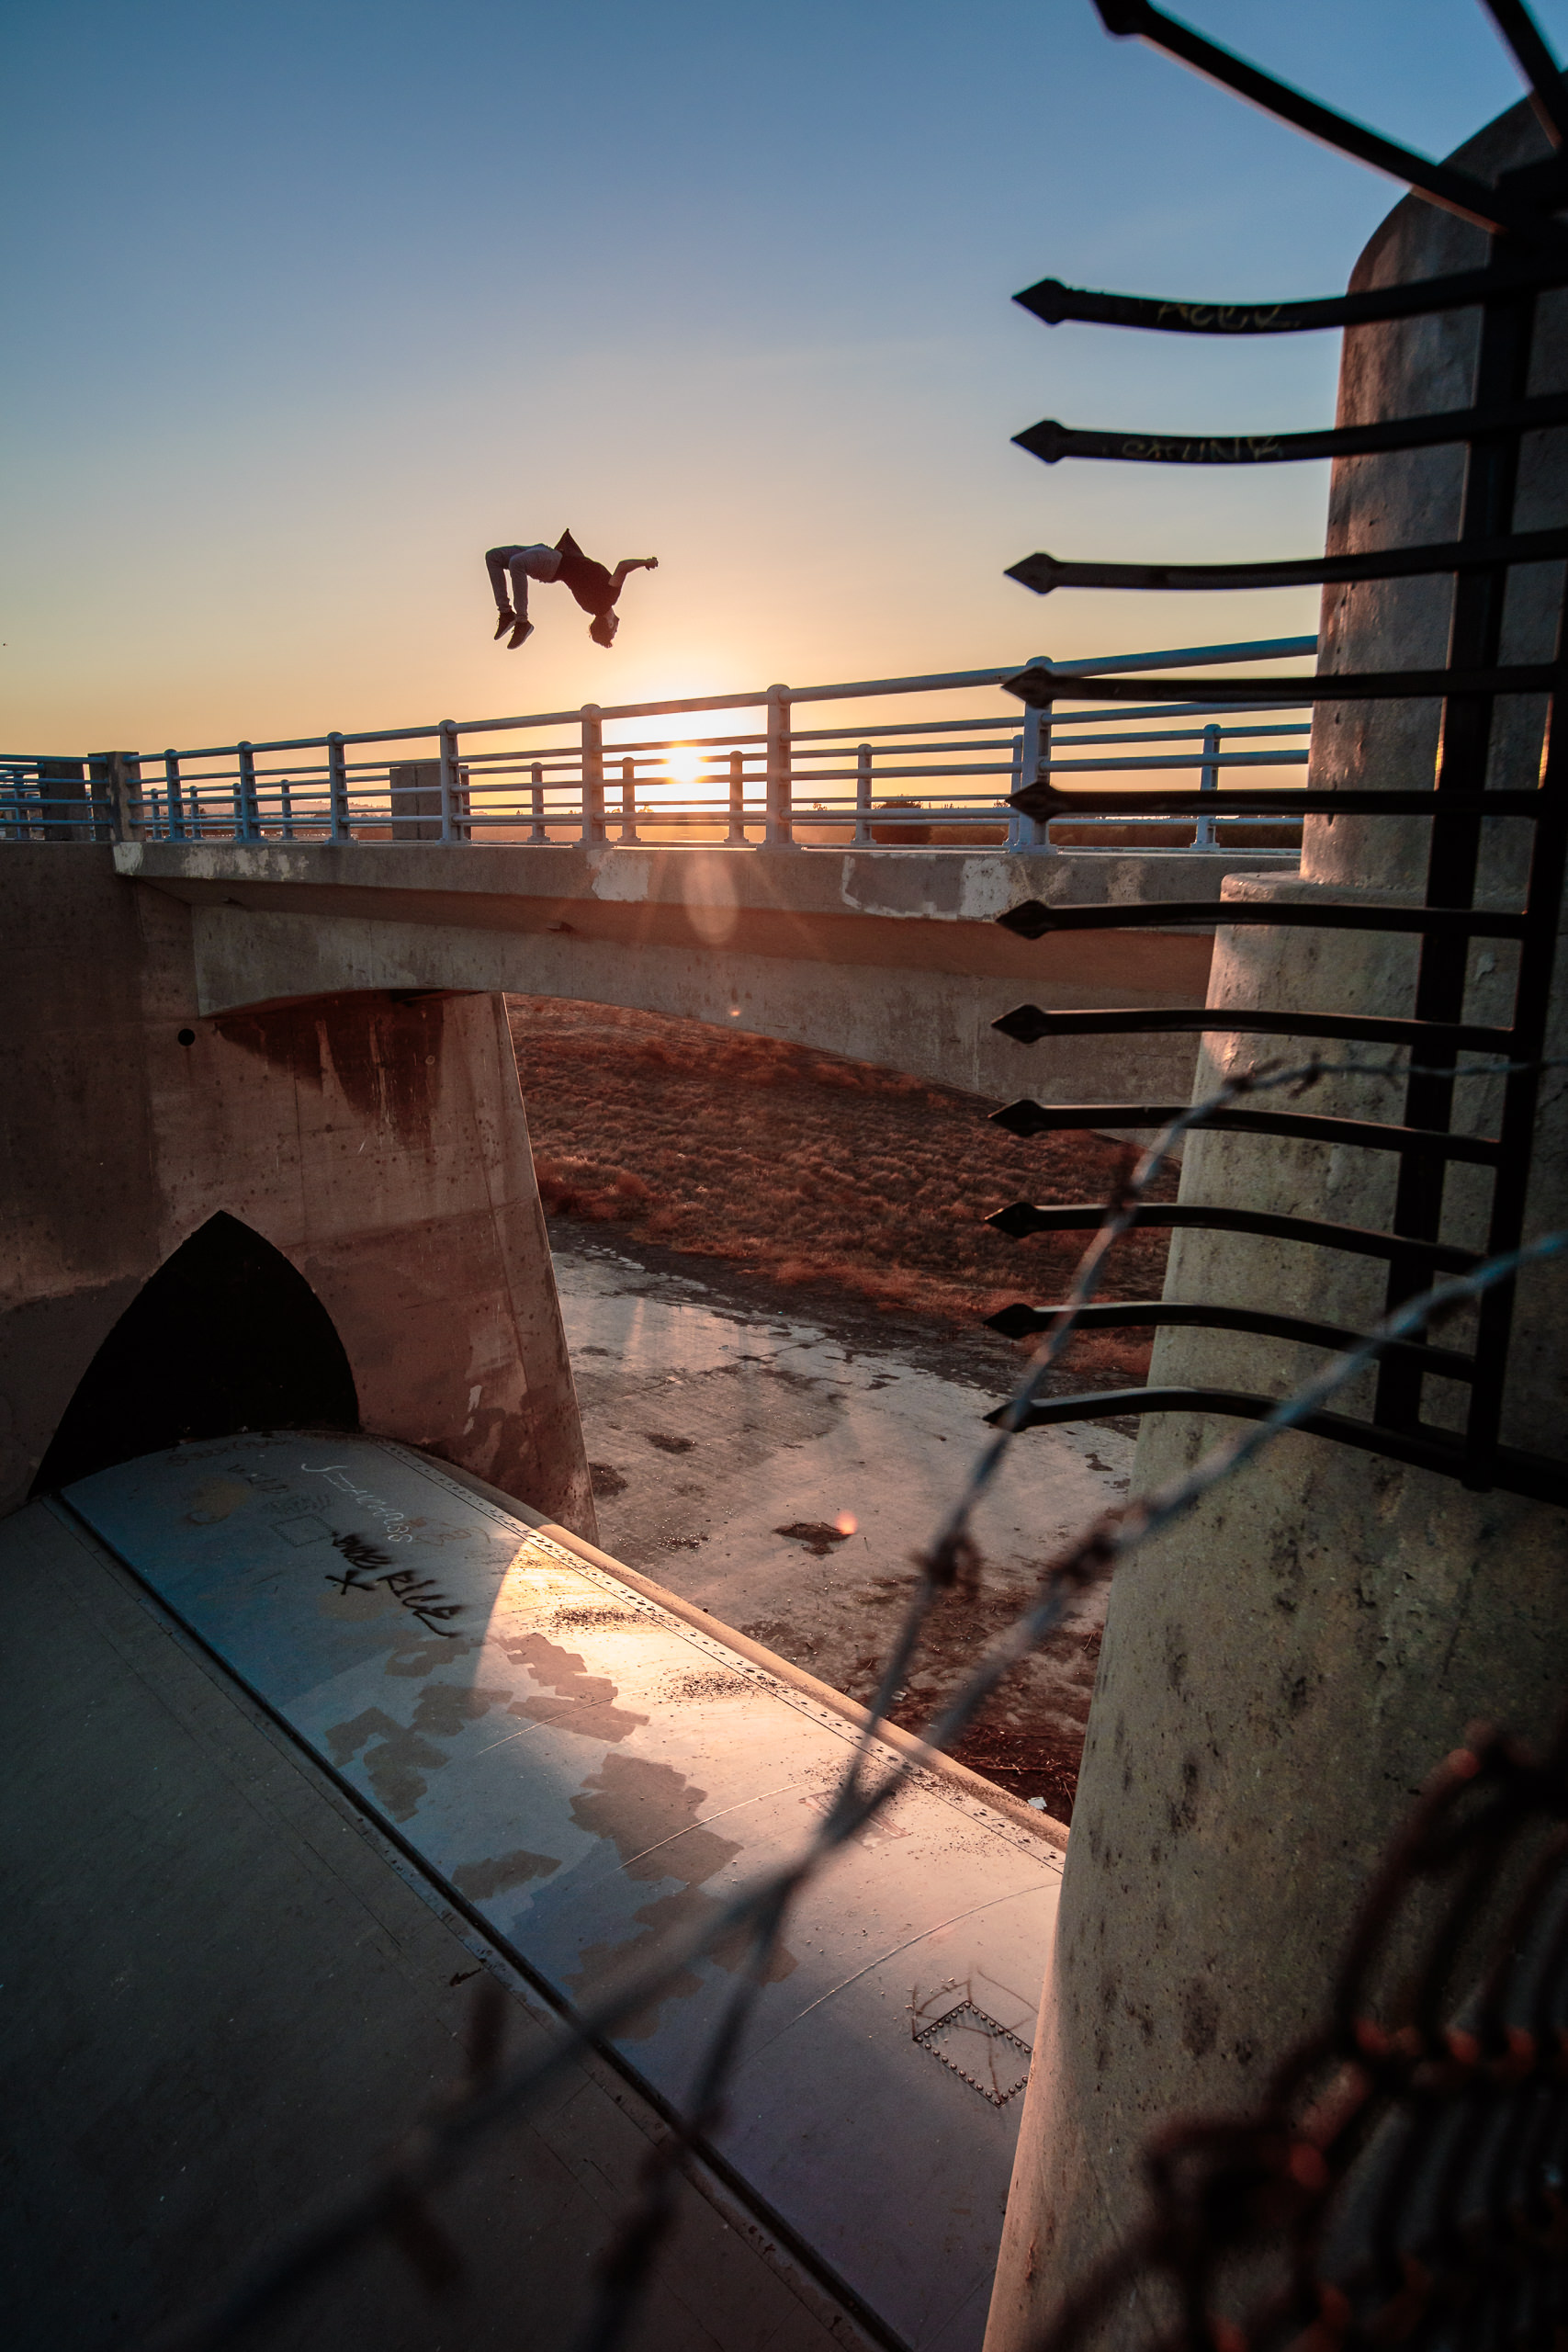 james kingston sepulveda backflip